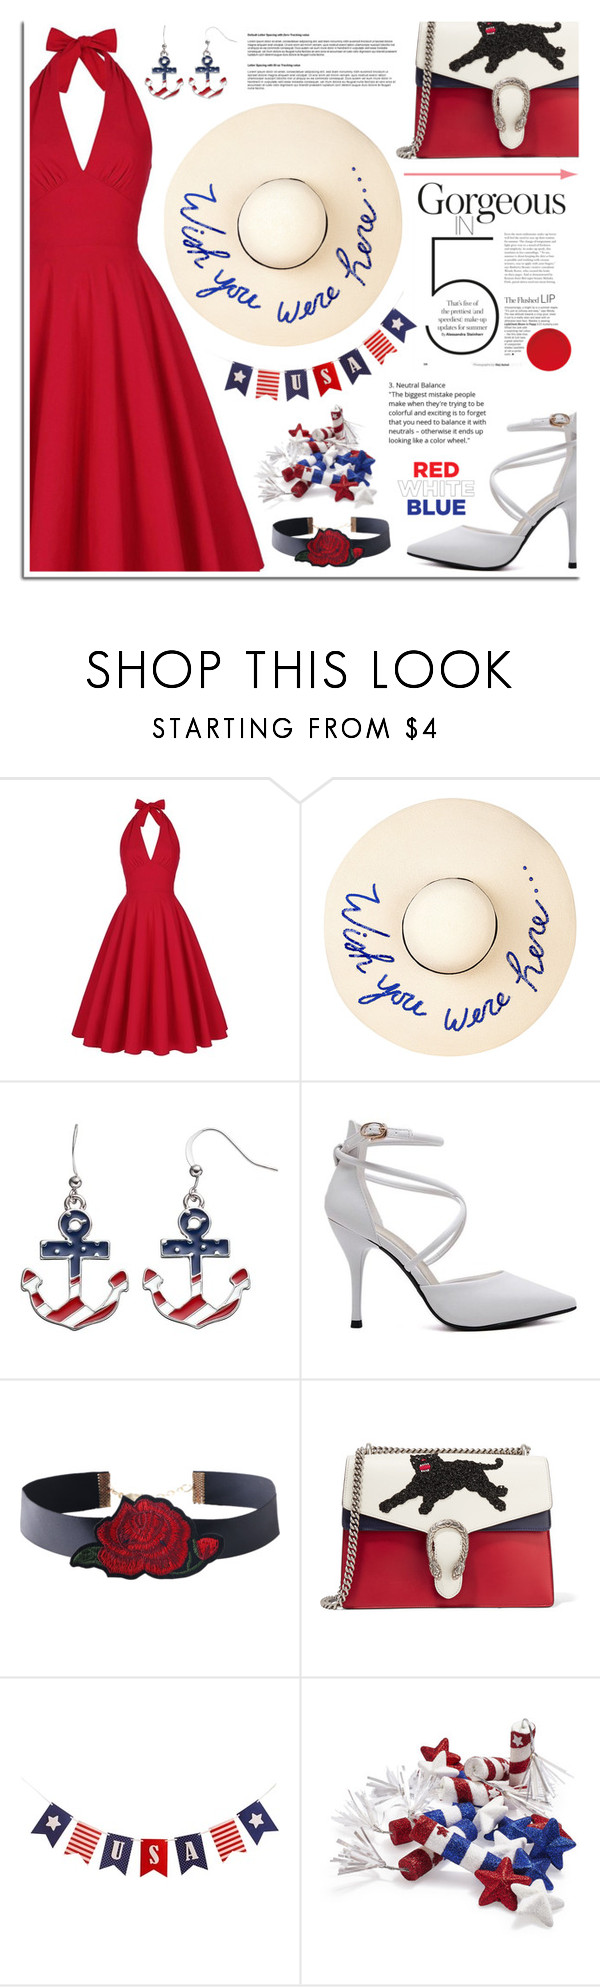 """Red, White & Blue: Celebrate the 4th!"" by dora04 ❤ liked on Polyvore featuring Eugenia Kim, Gucci, Sur La Table, fourthofjuly and rosegal"